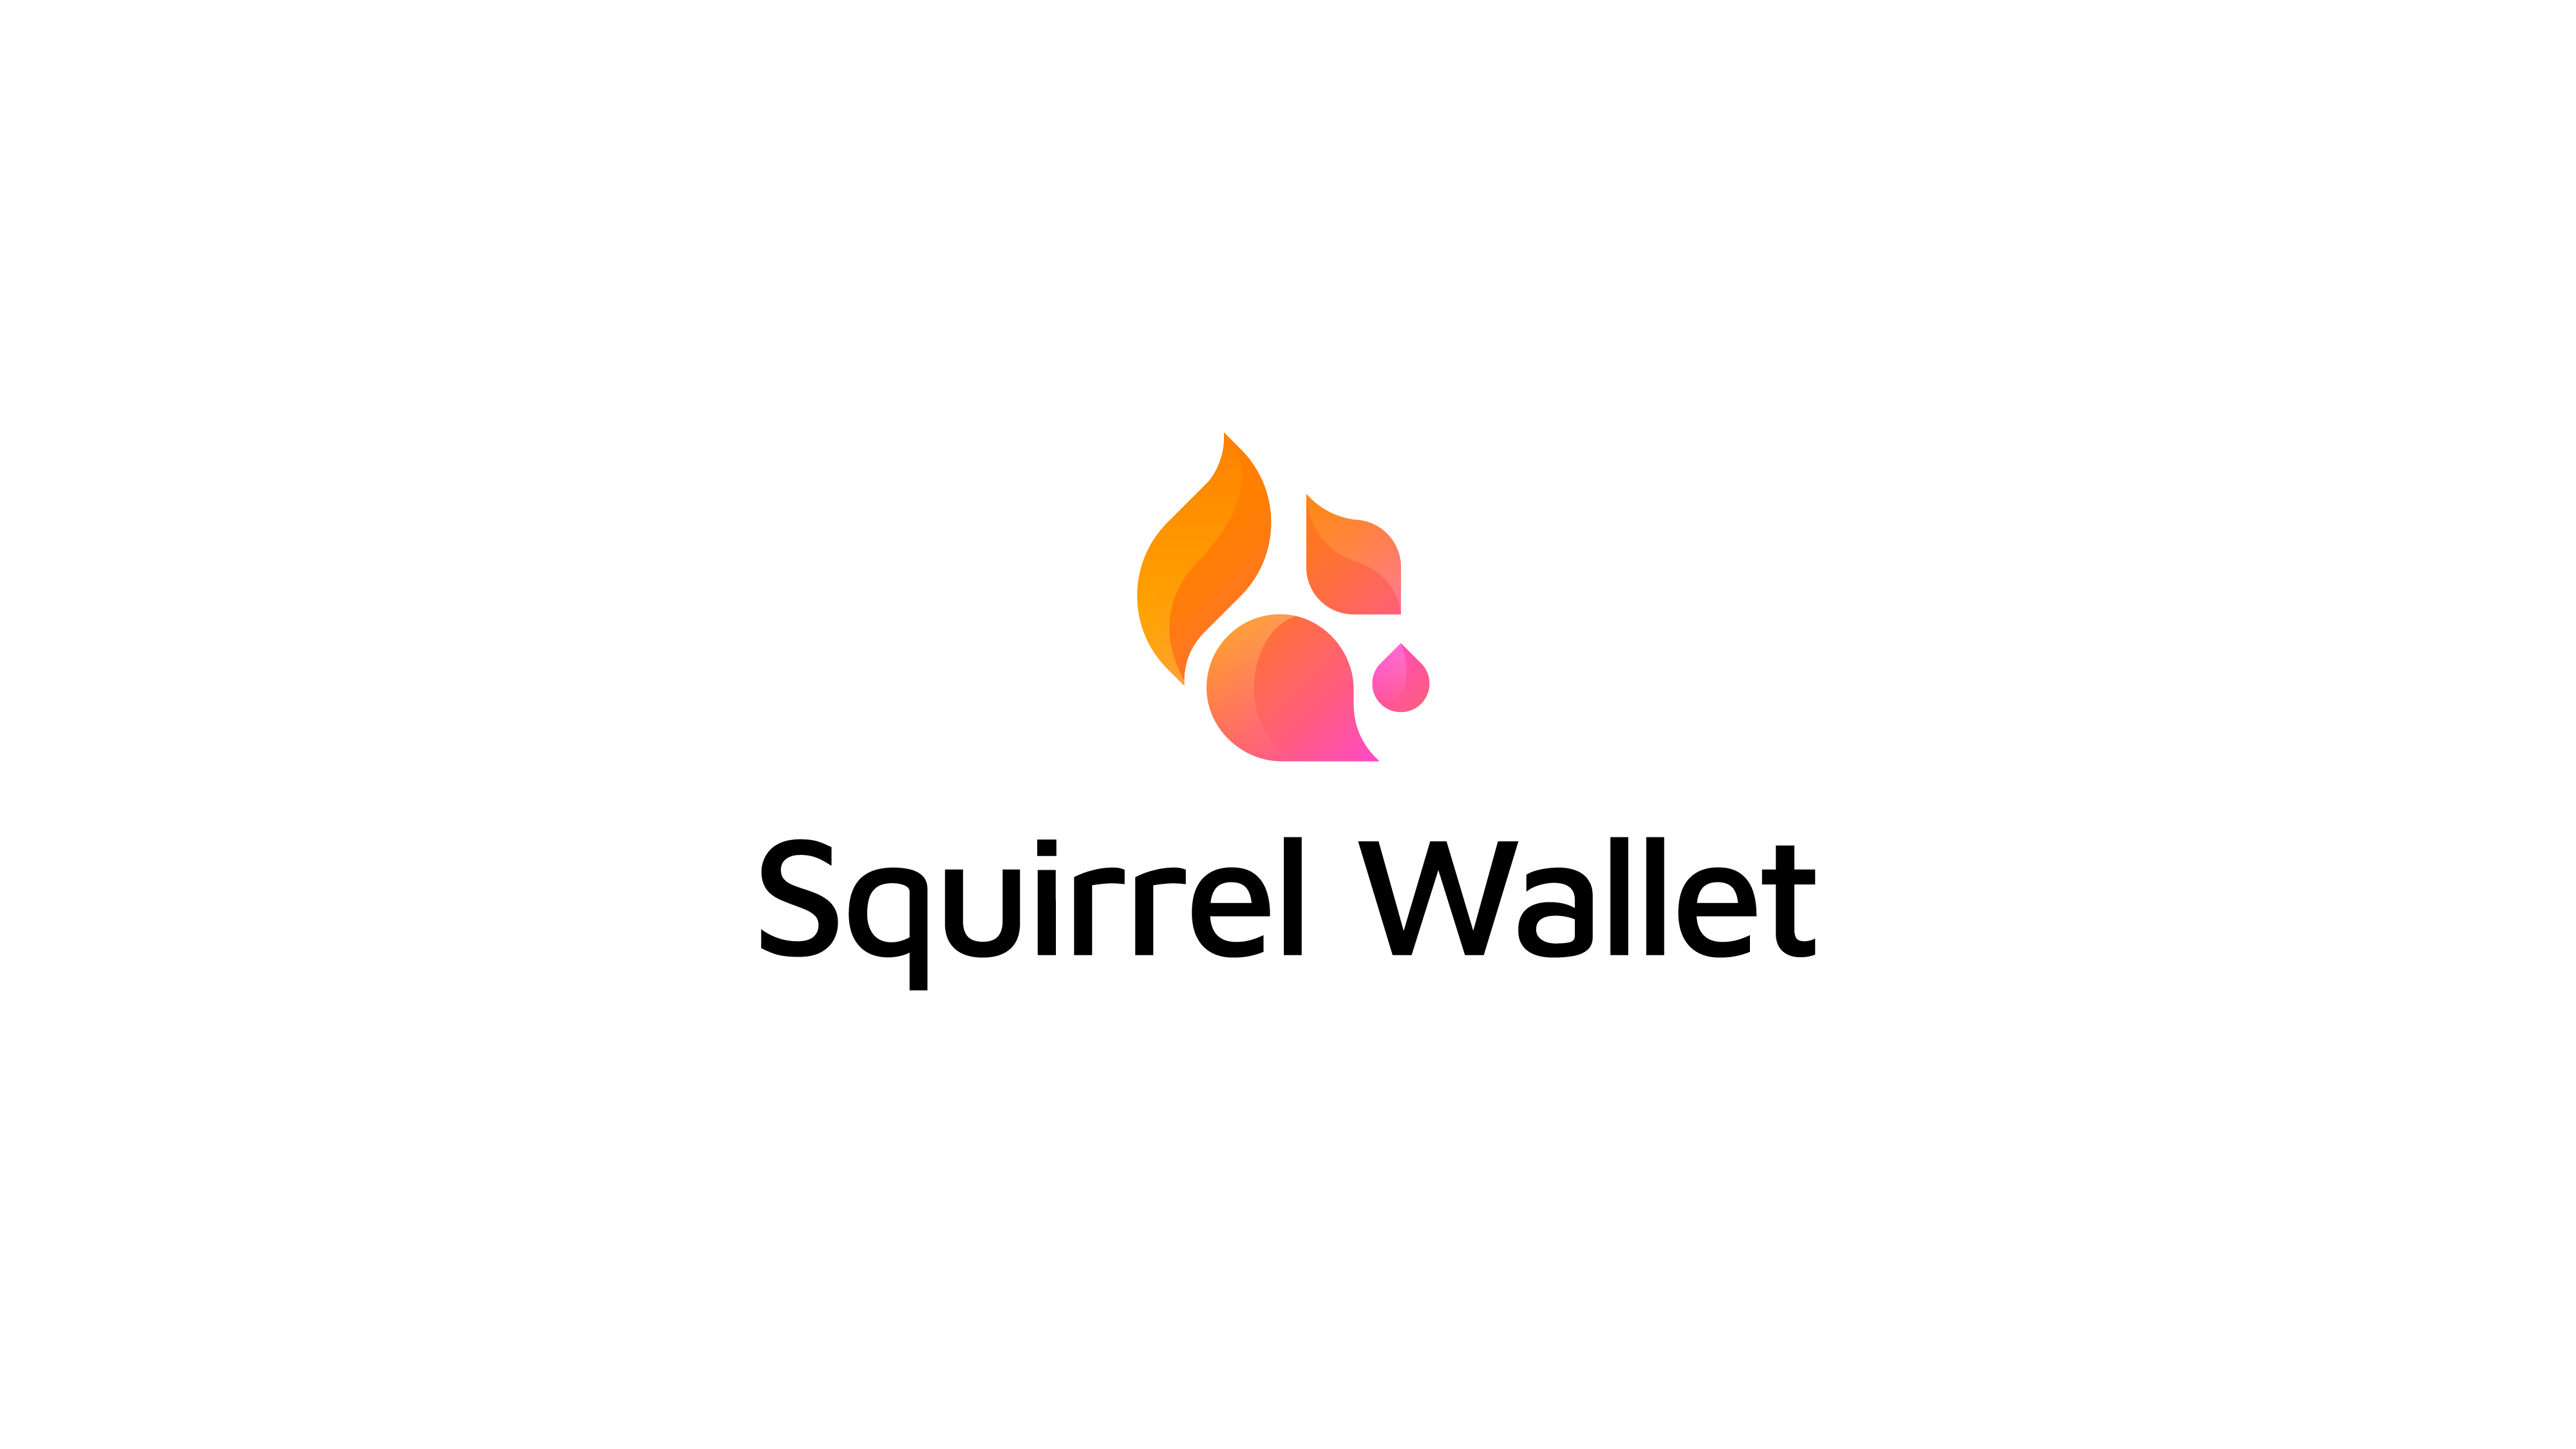 cute squirrel logo for crypto wallet project